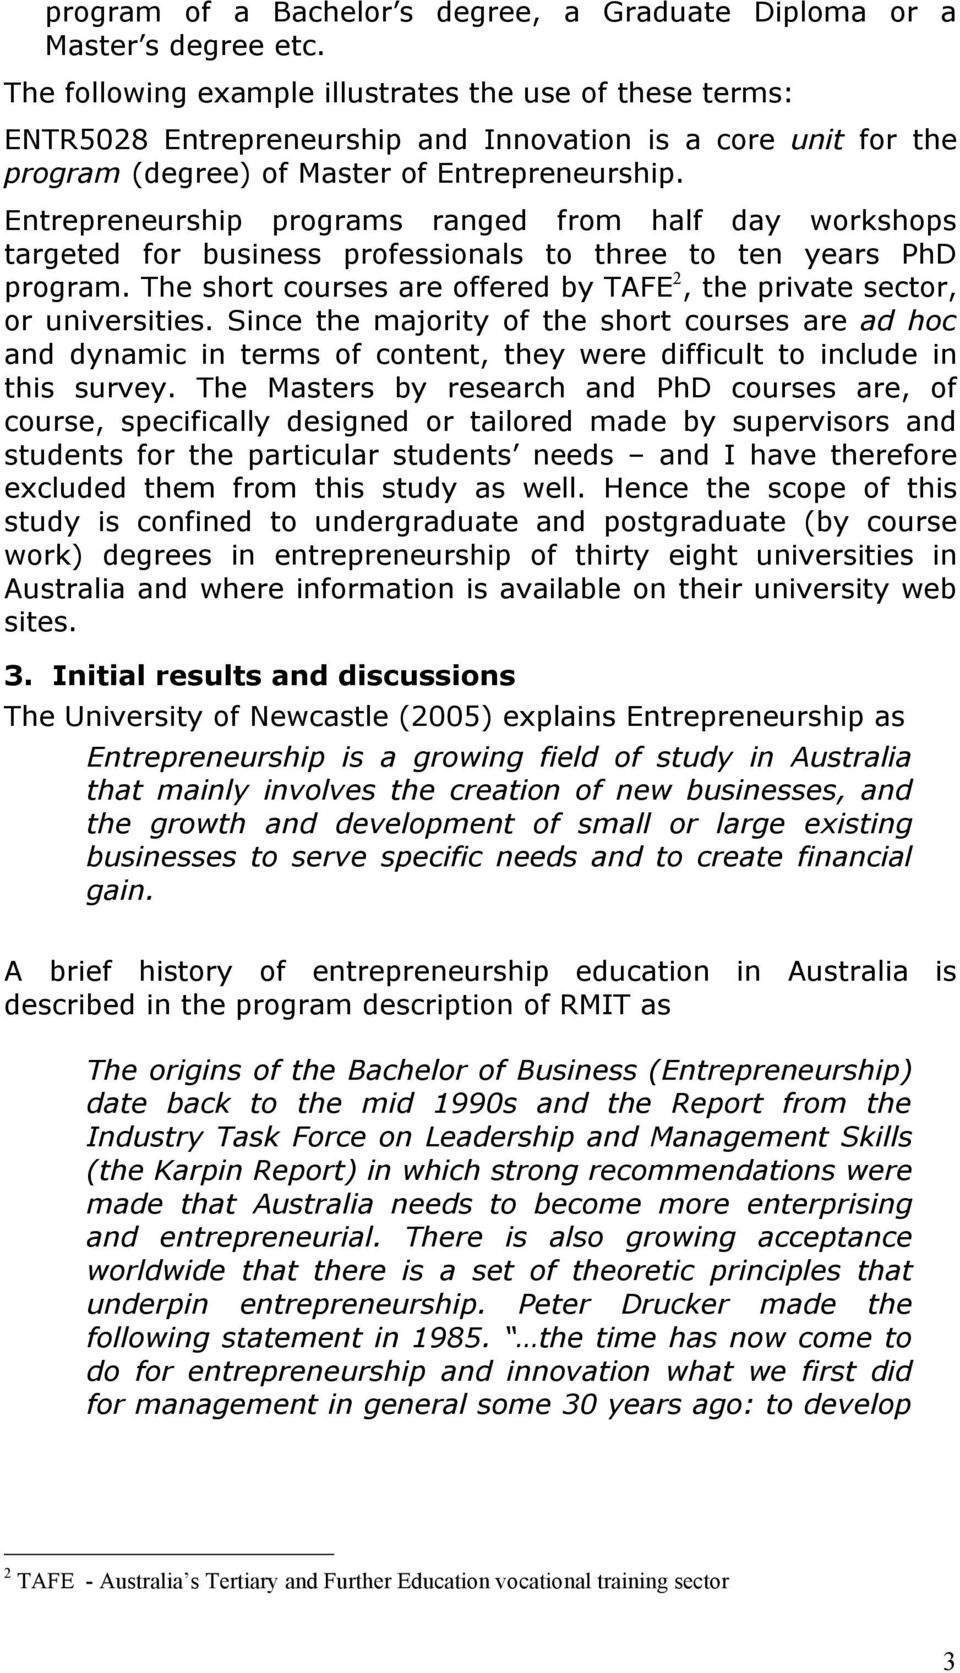 Entrepreneurship programs ranged from half day workshops targeted for business professionals to three to ten years PhD program.